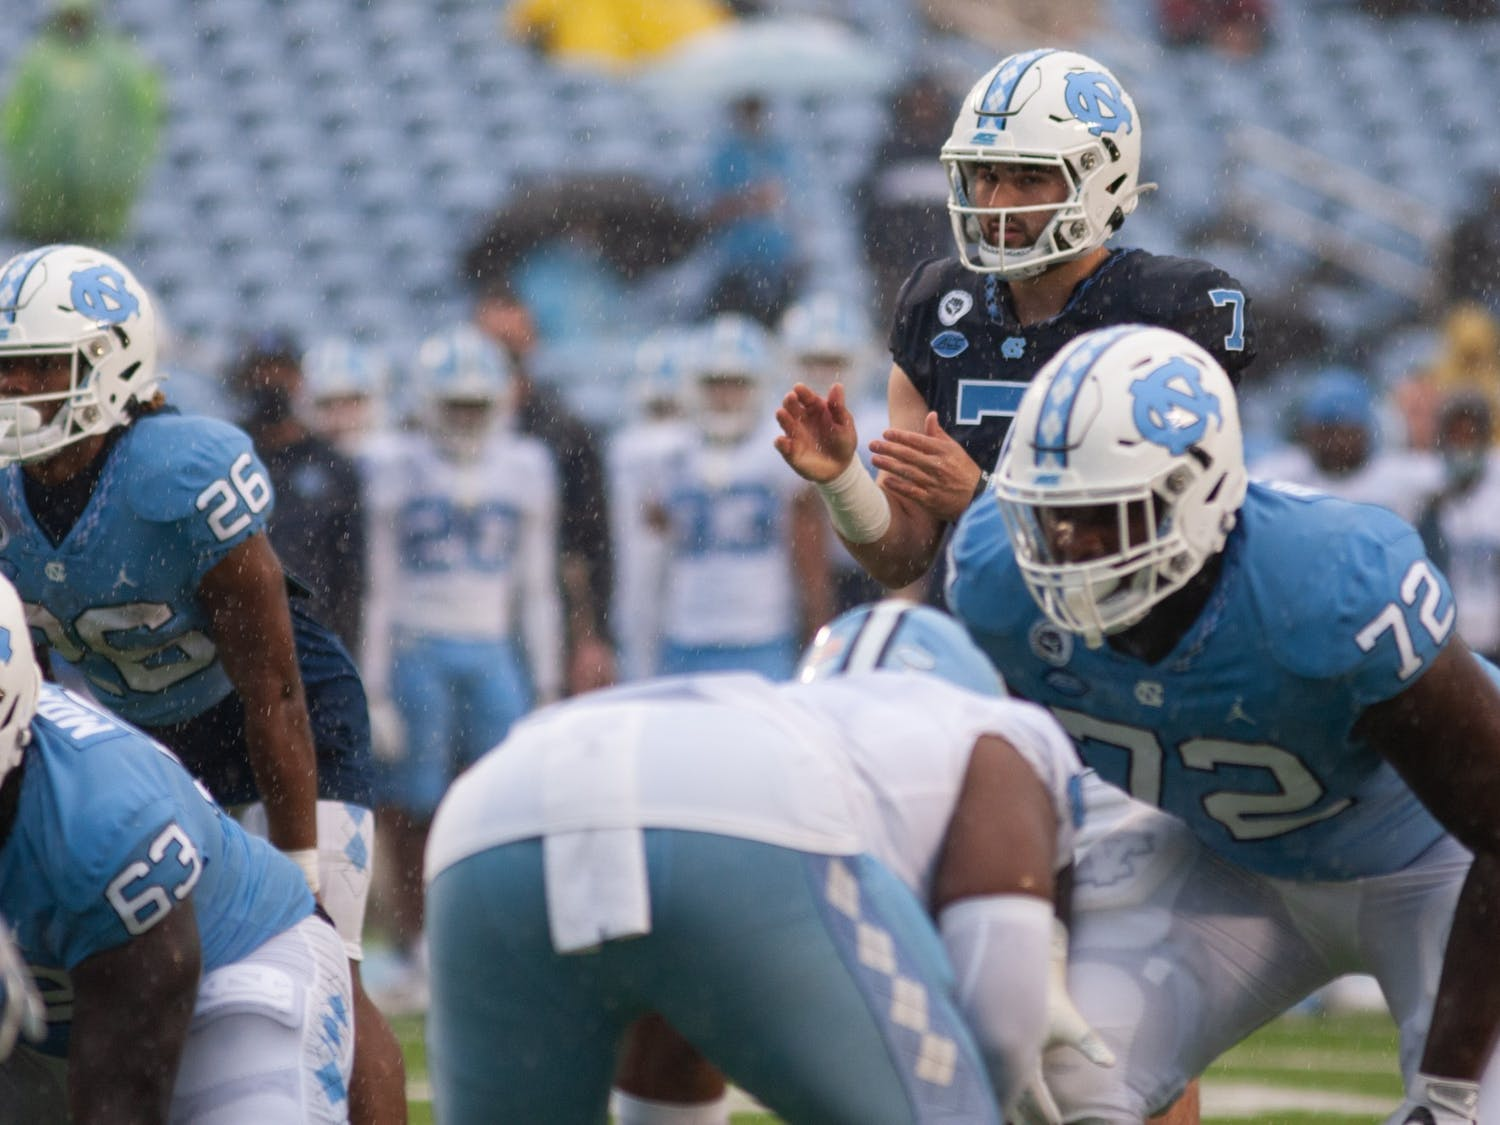 UNC junior quarterback Sam Howell (7) awaits a snap during Carolina's rainy spring game on April 24th in Kenan Stadium.